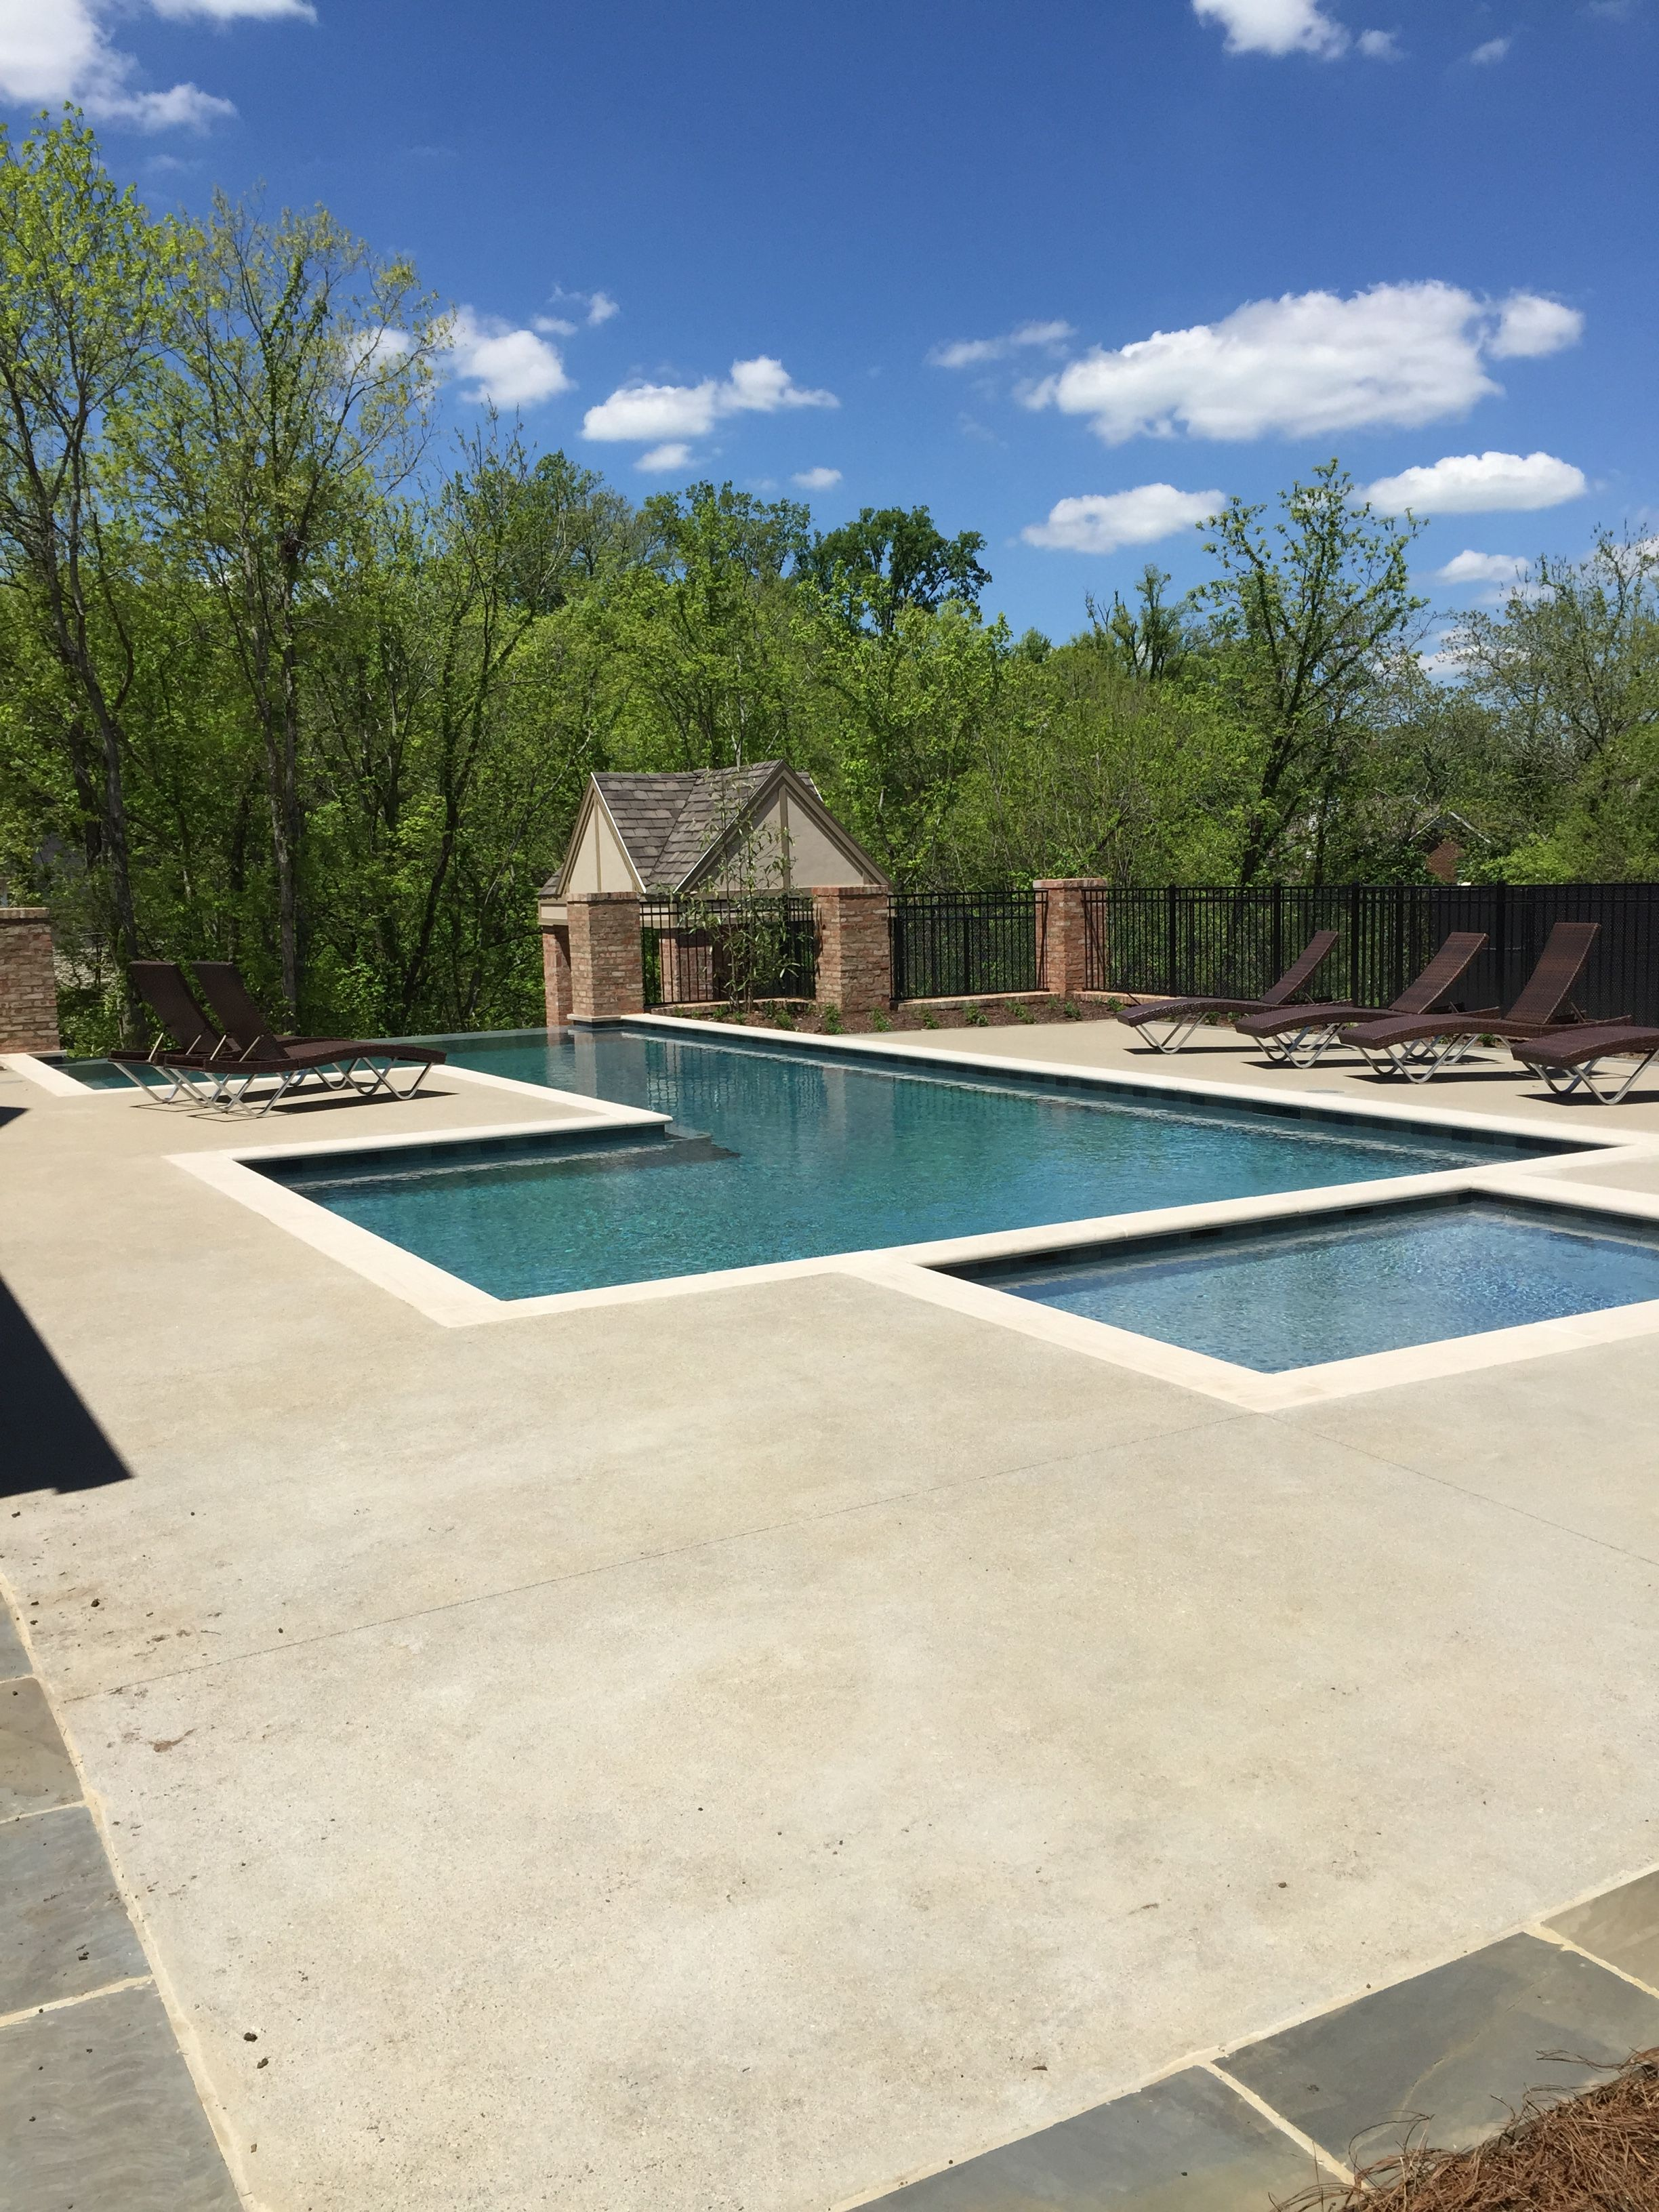 Pool Builders, Pool Spa, Nashville, Tennessee